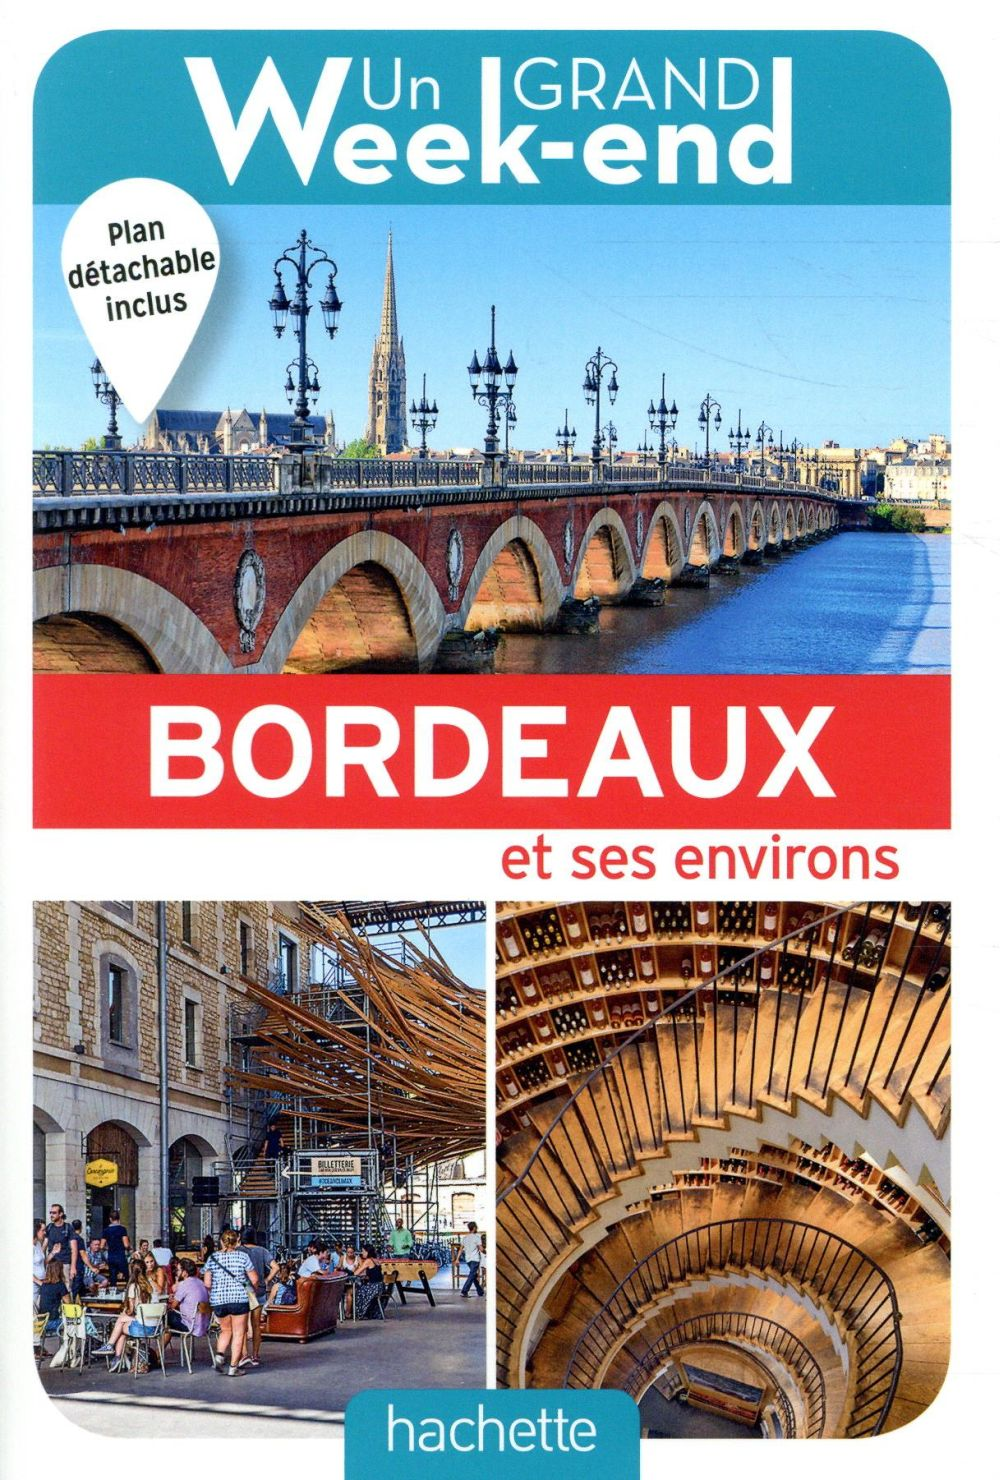 UN GRAND WEEK-END A BORDEAUX. LE GUIDE